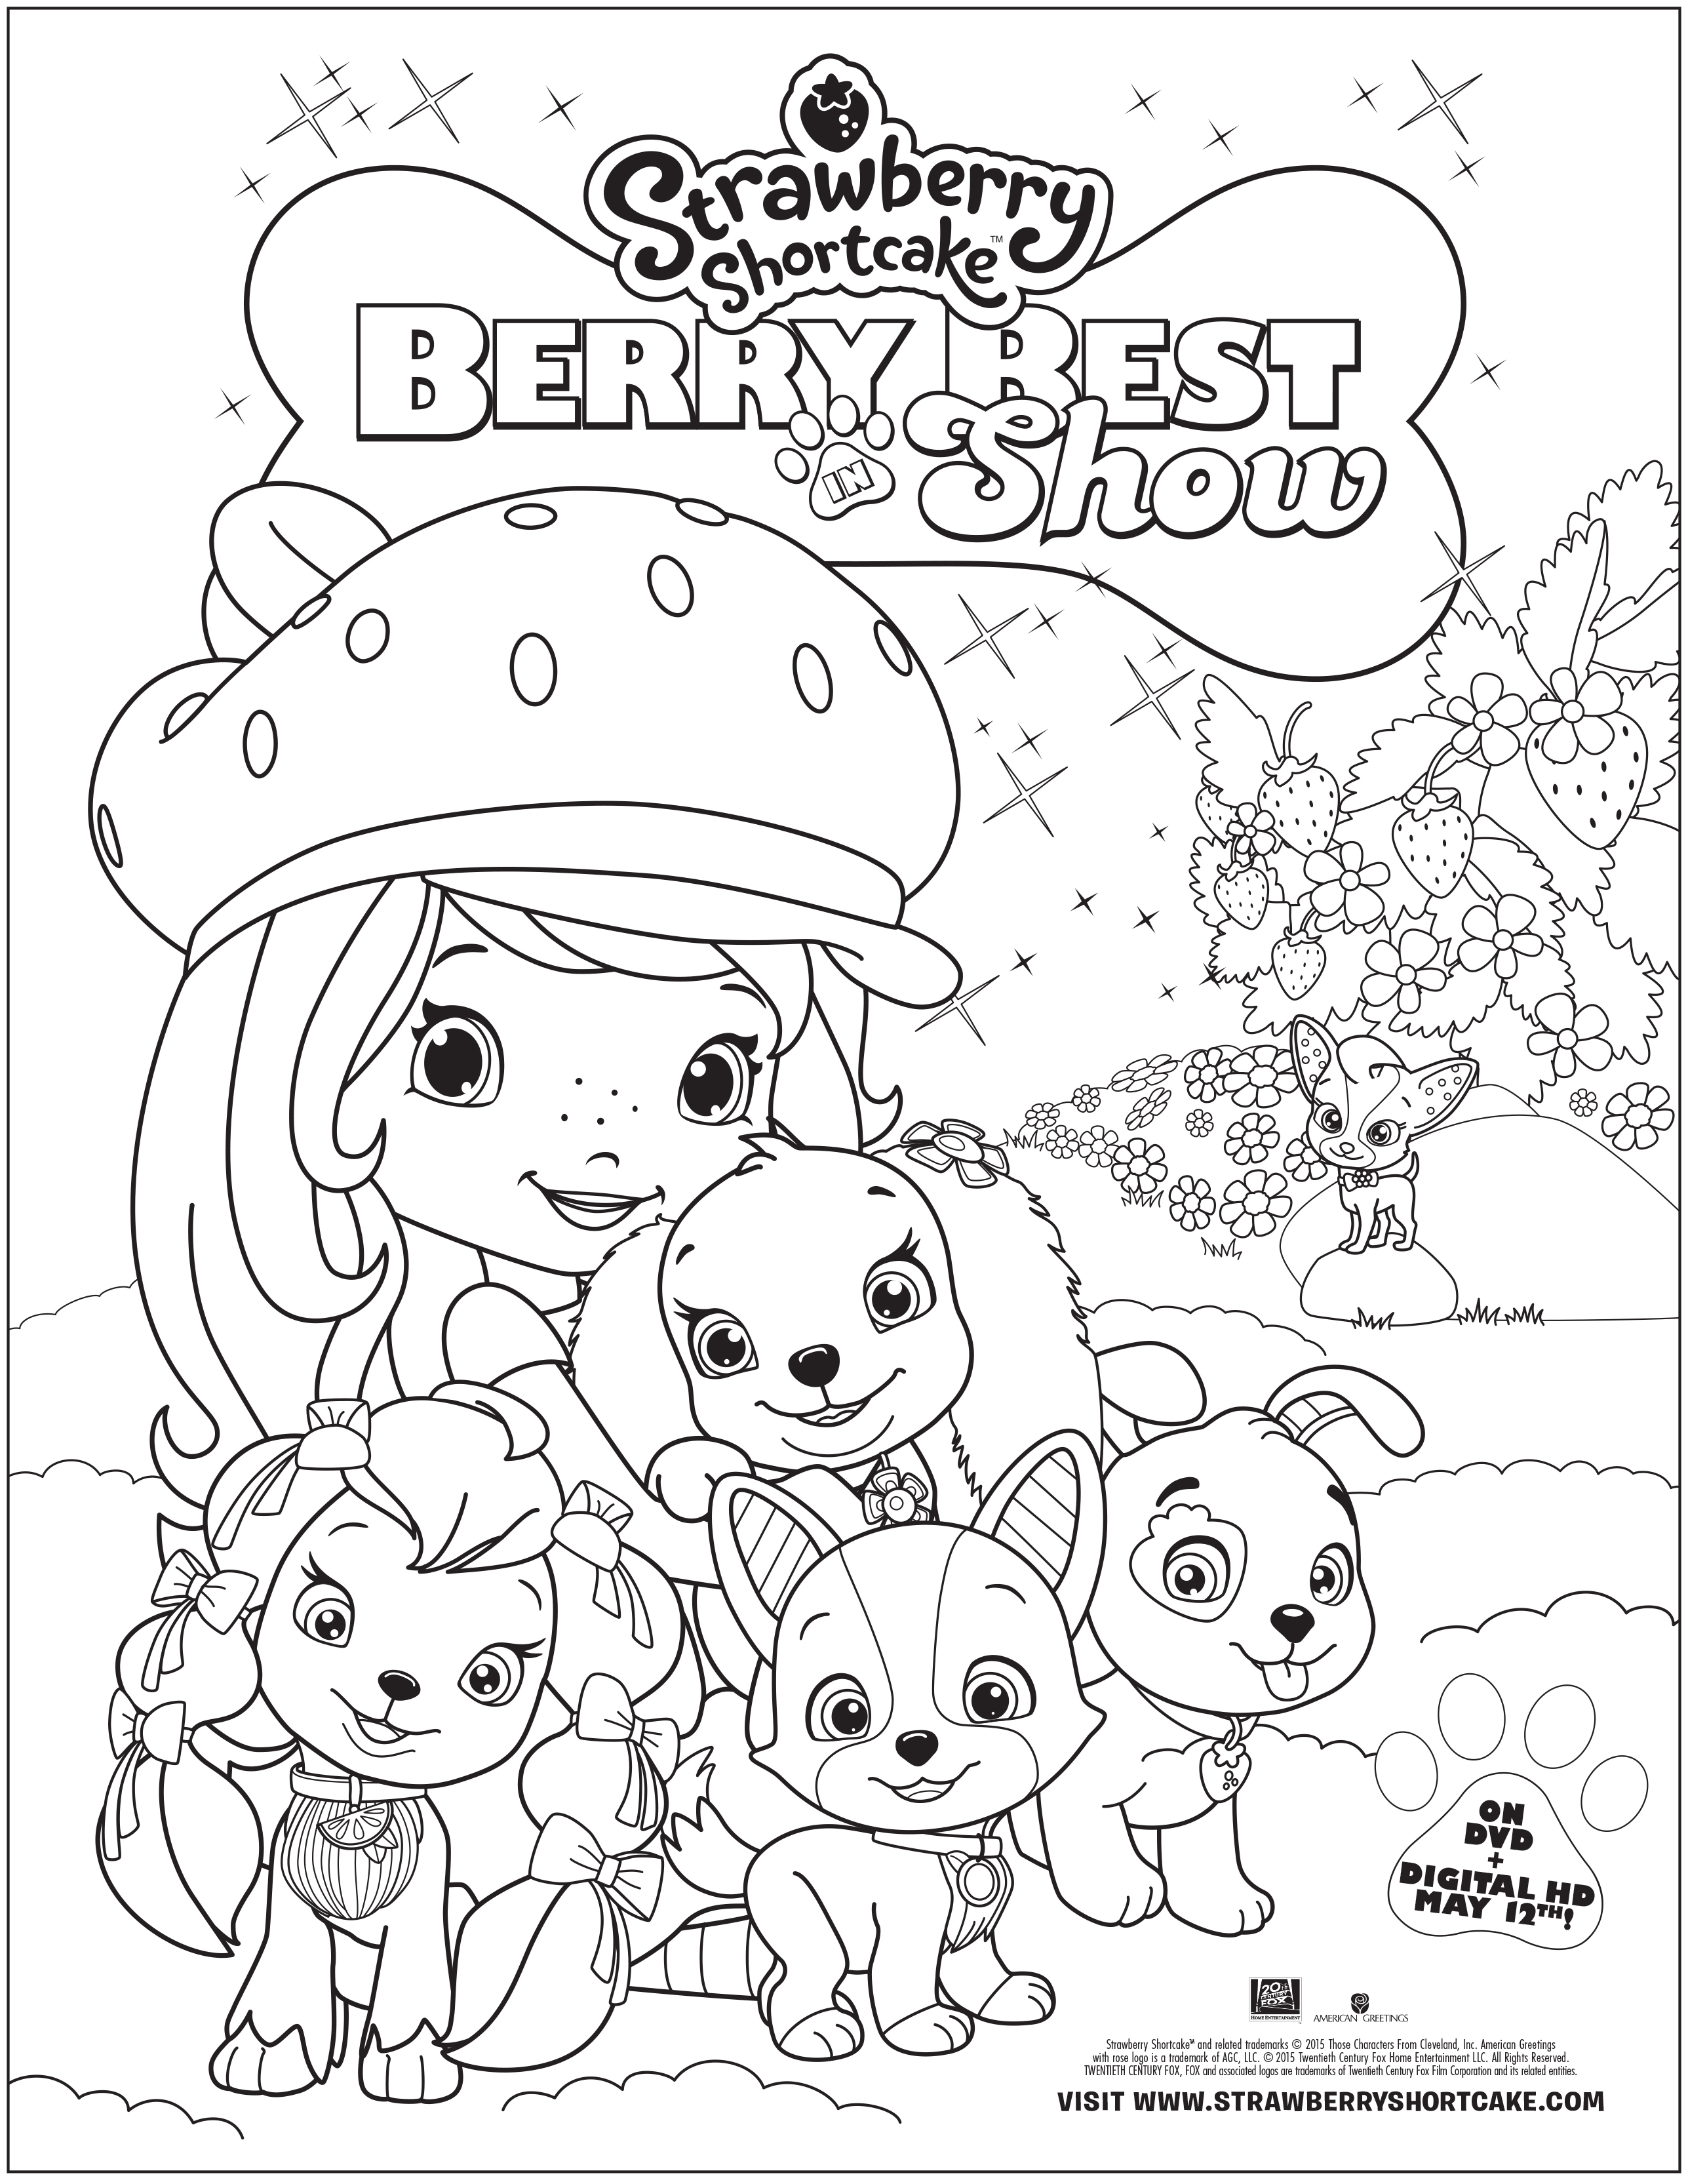 strawberry shortcake berry best in show activity sheets giveaway